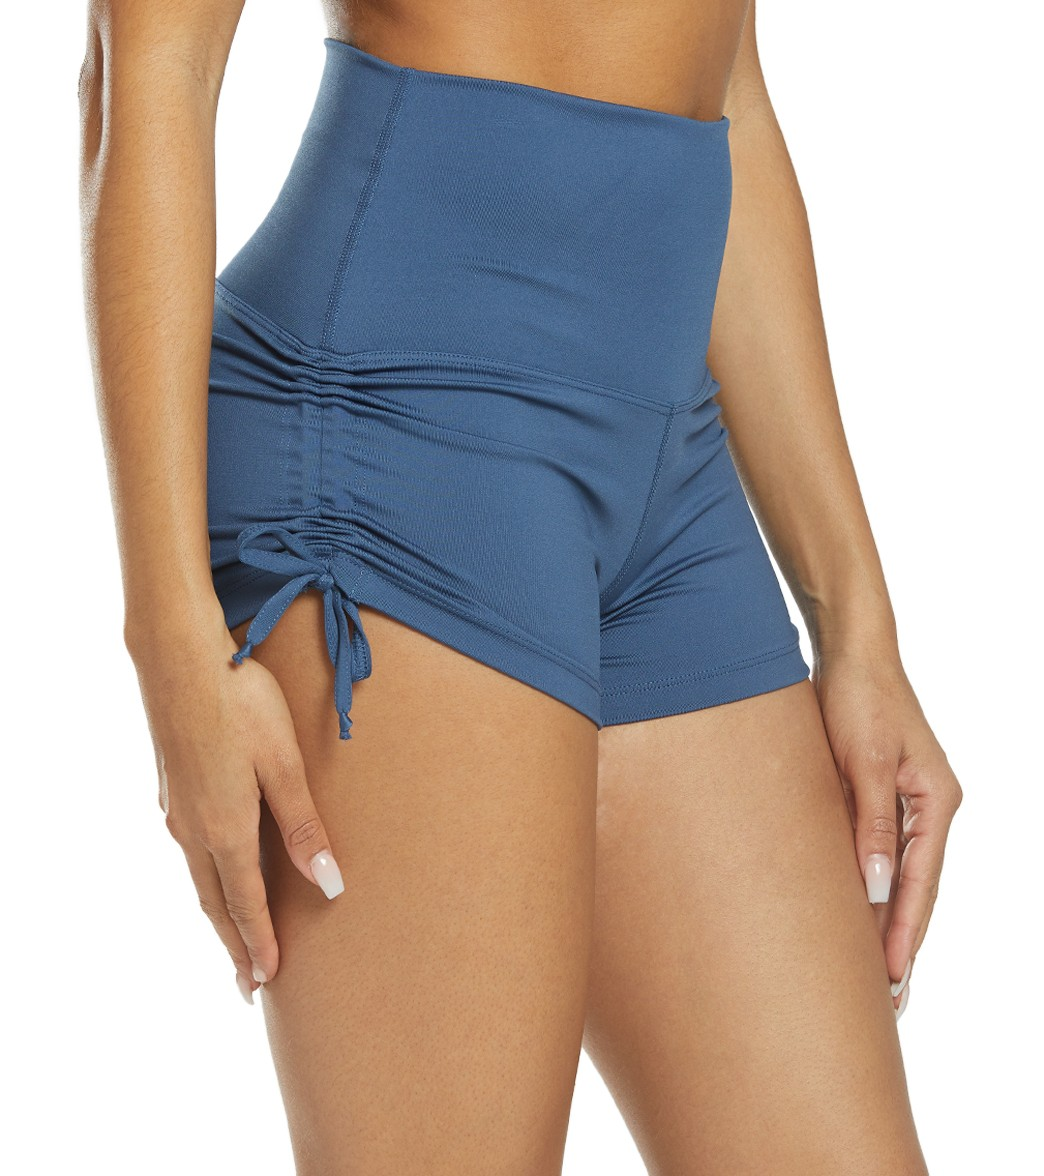 3921debbd1 Mika Yoga Wear Lucia High Waisted Yoga Shorts at YogaOutlet.com - Free  Shipping